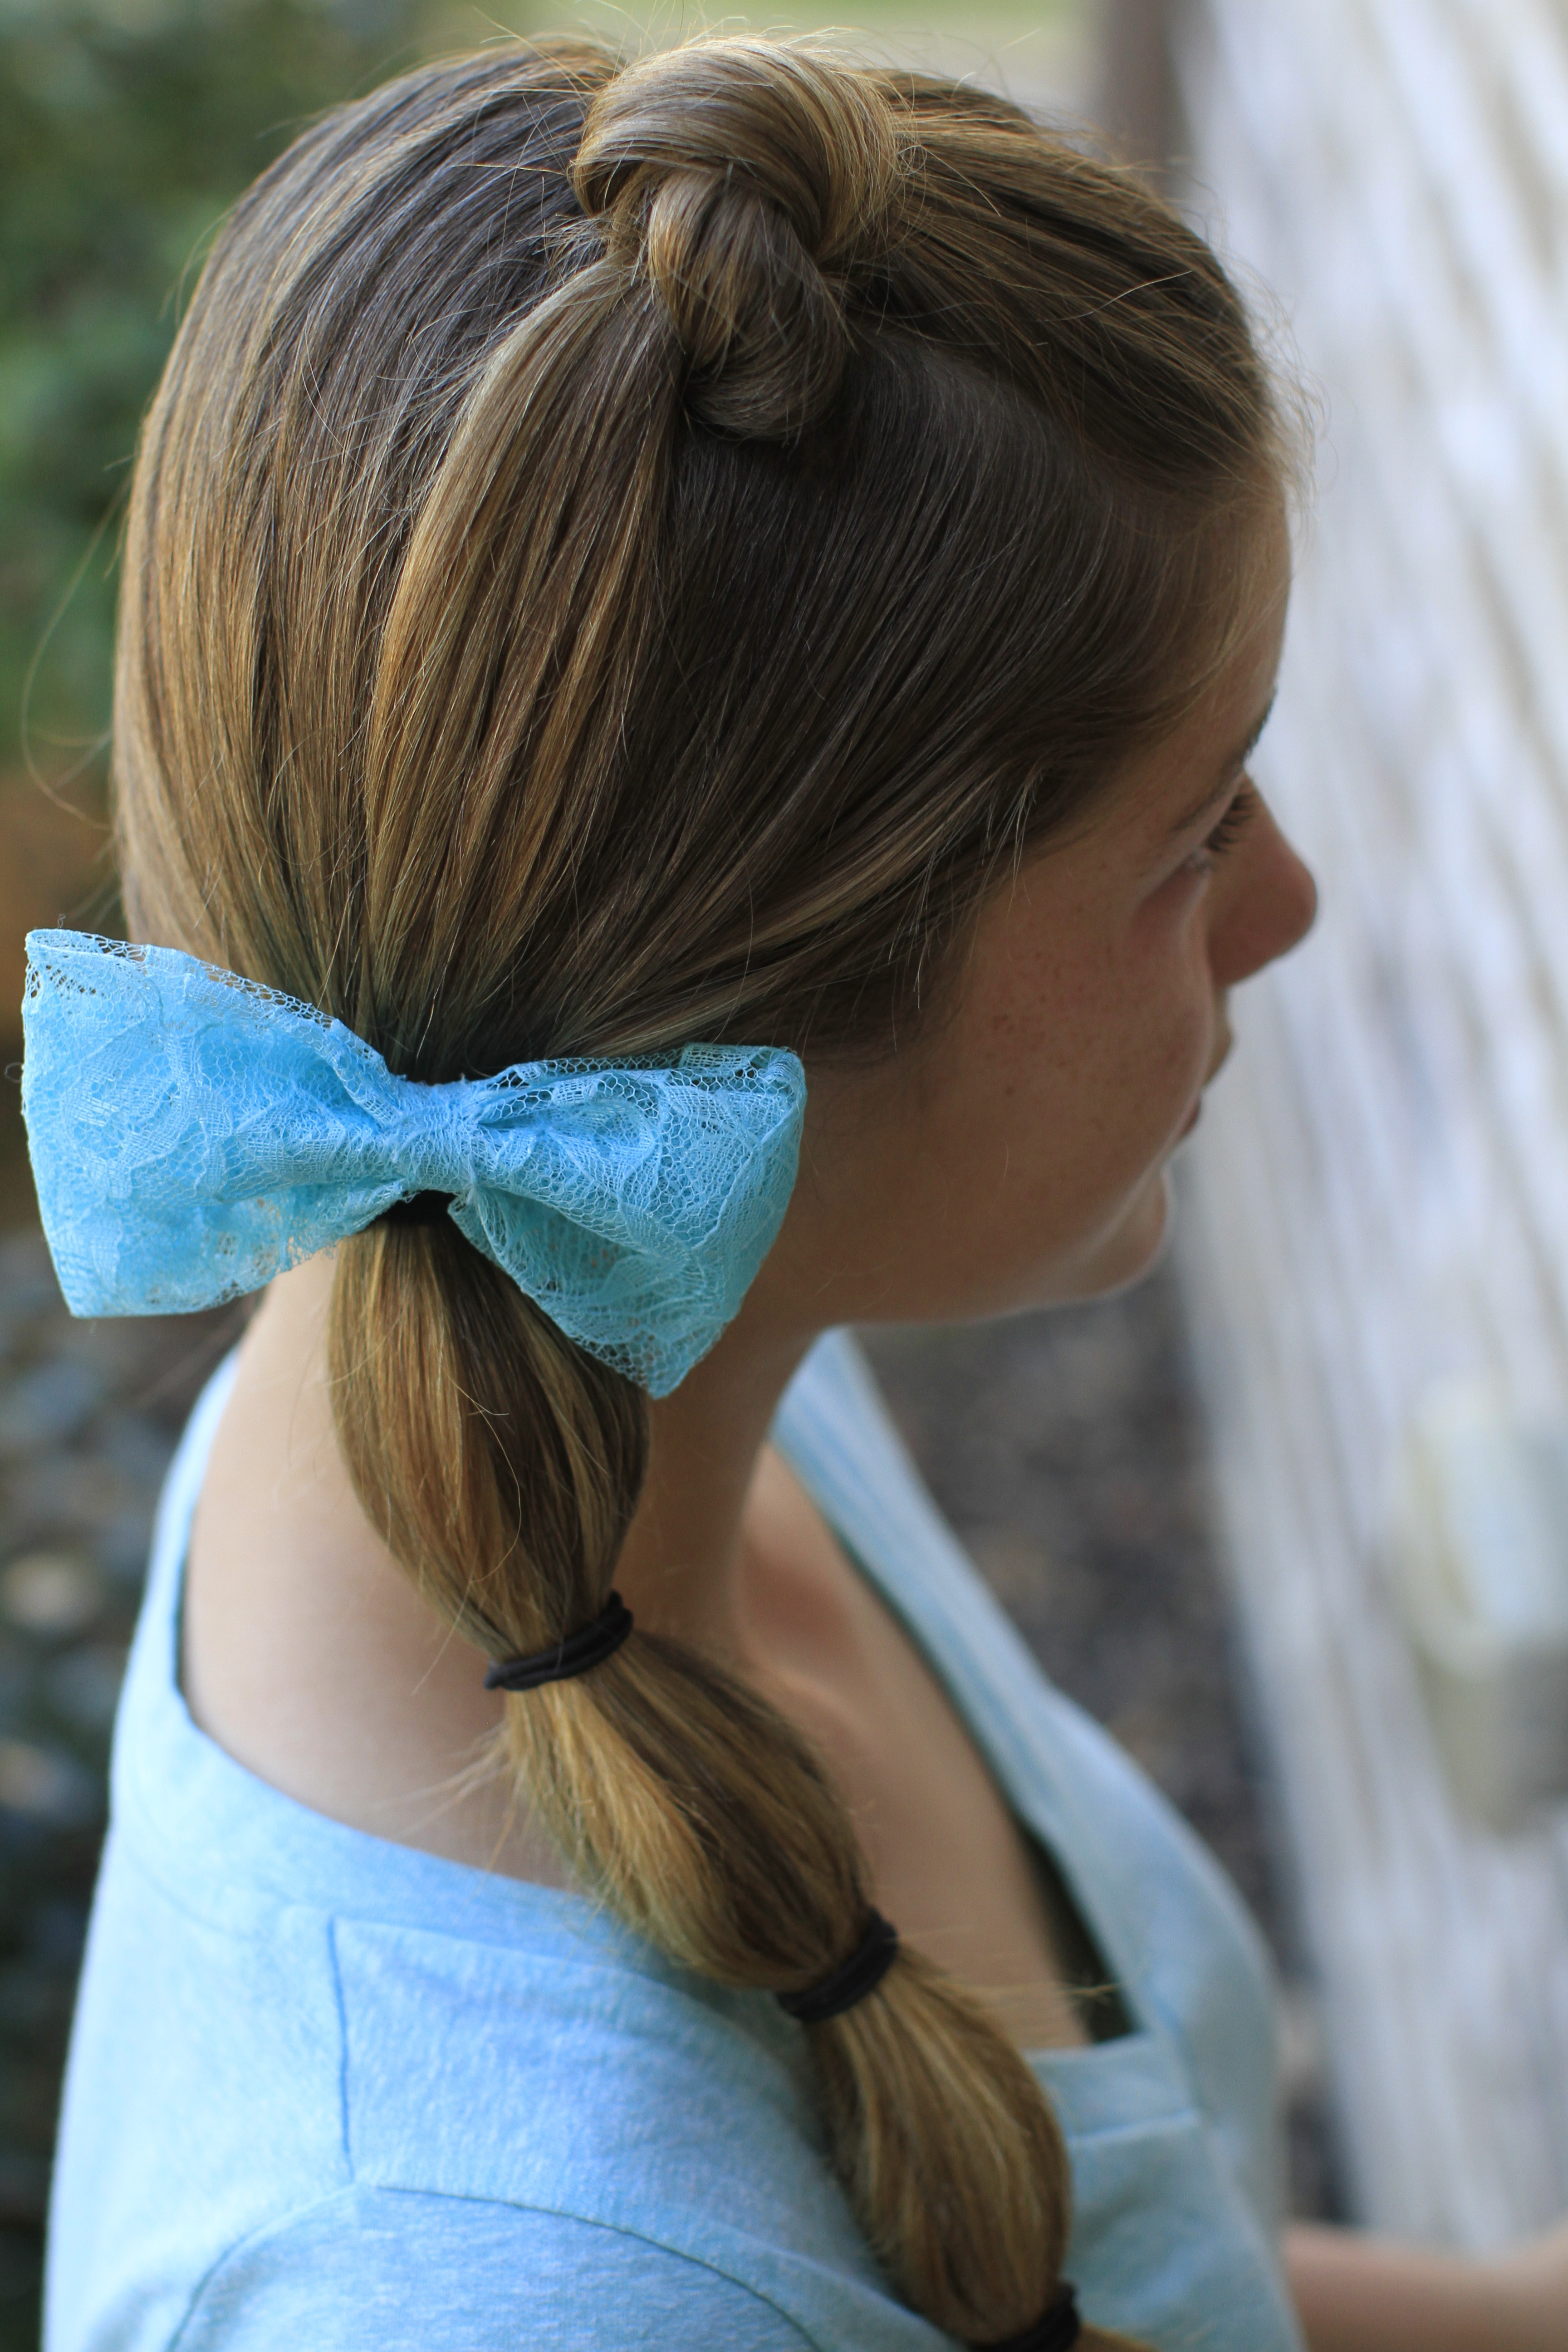 Hairstyle Video: Top Knot into Banded Side Ponytail